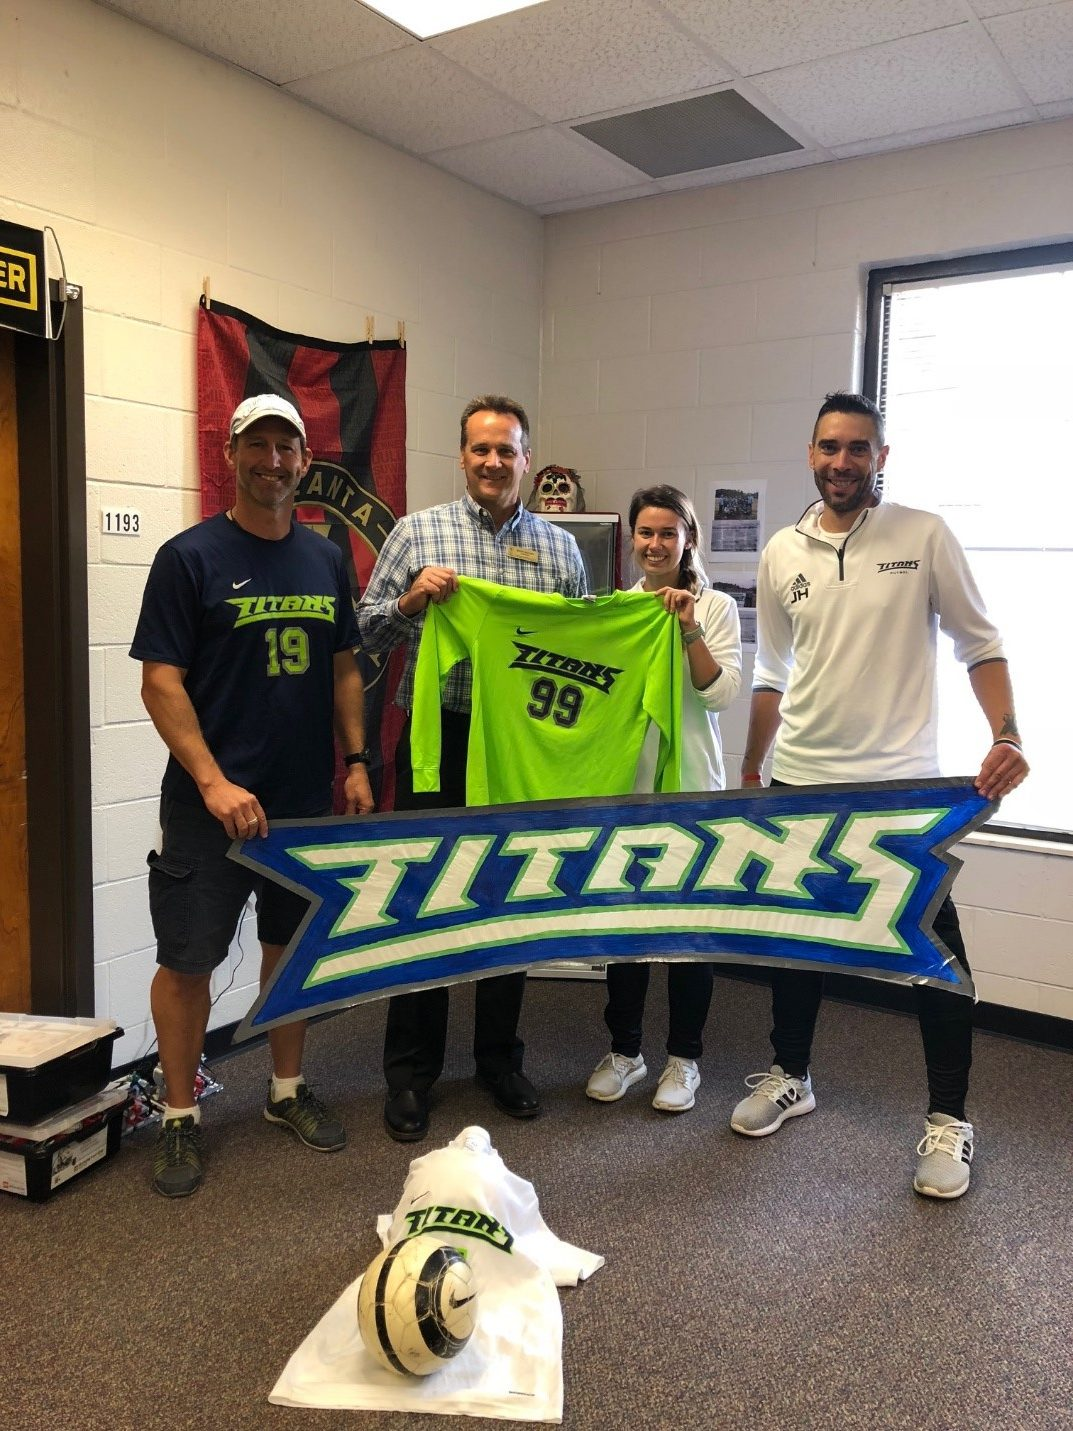 Discovery Soccer donates to Richards Middle!